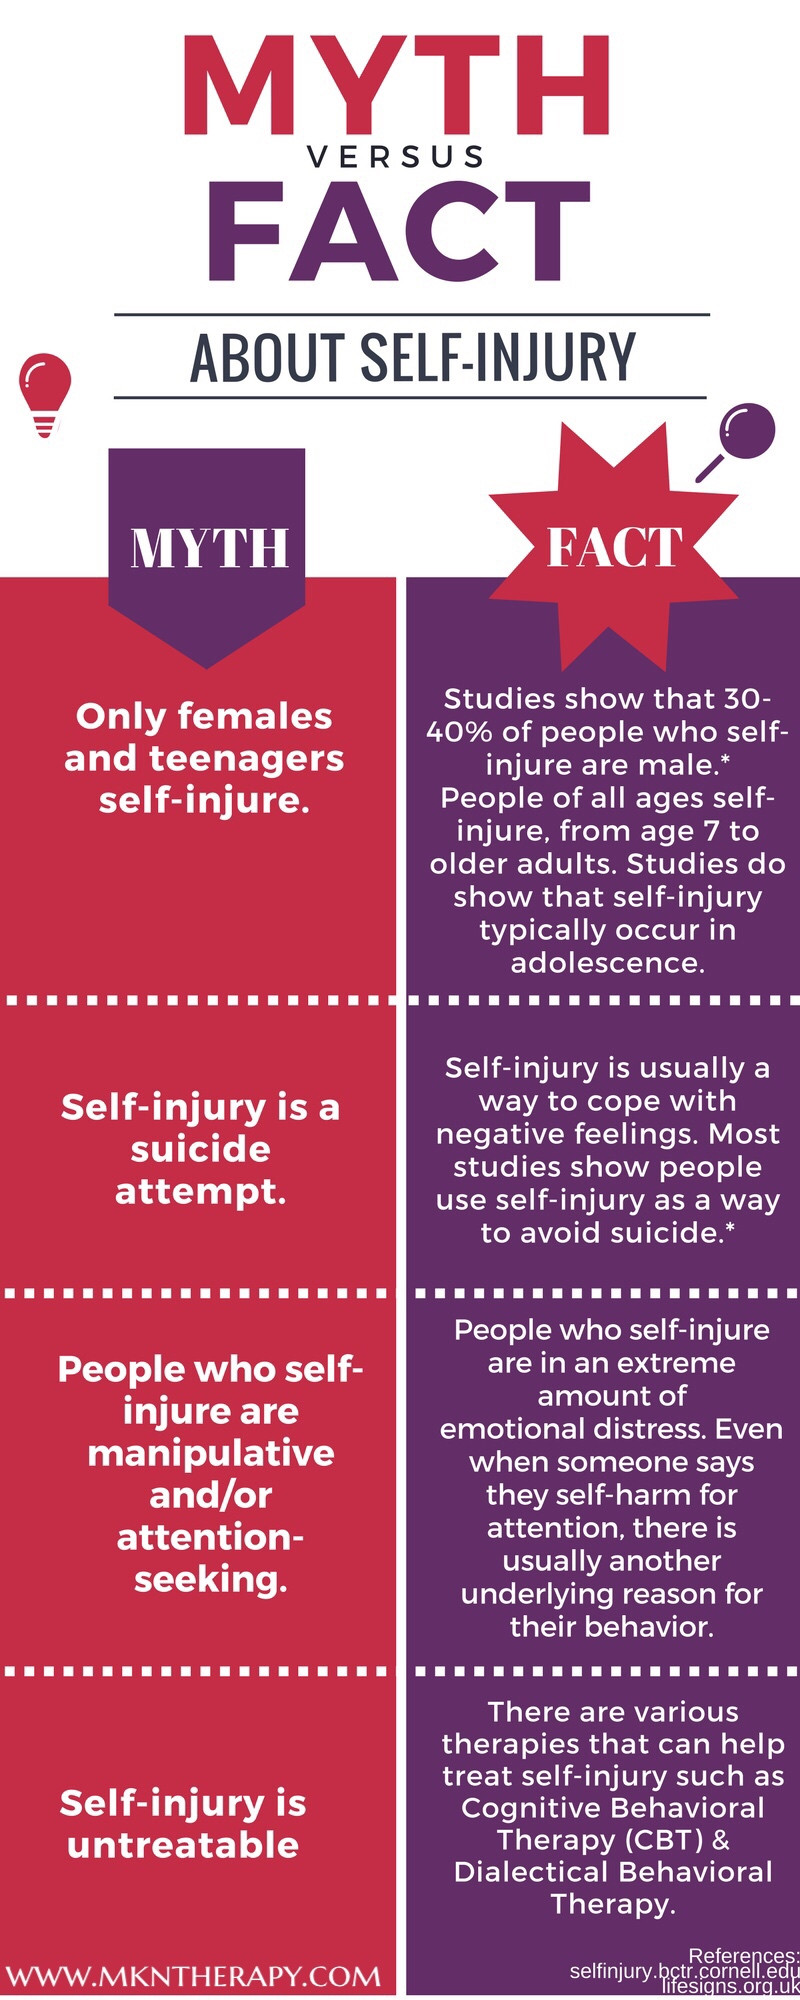 Myth versus fact about self-injury, myths about self-harm, self-injury facts